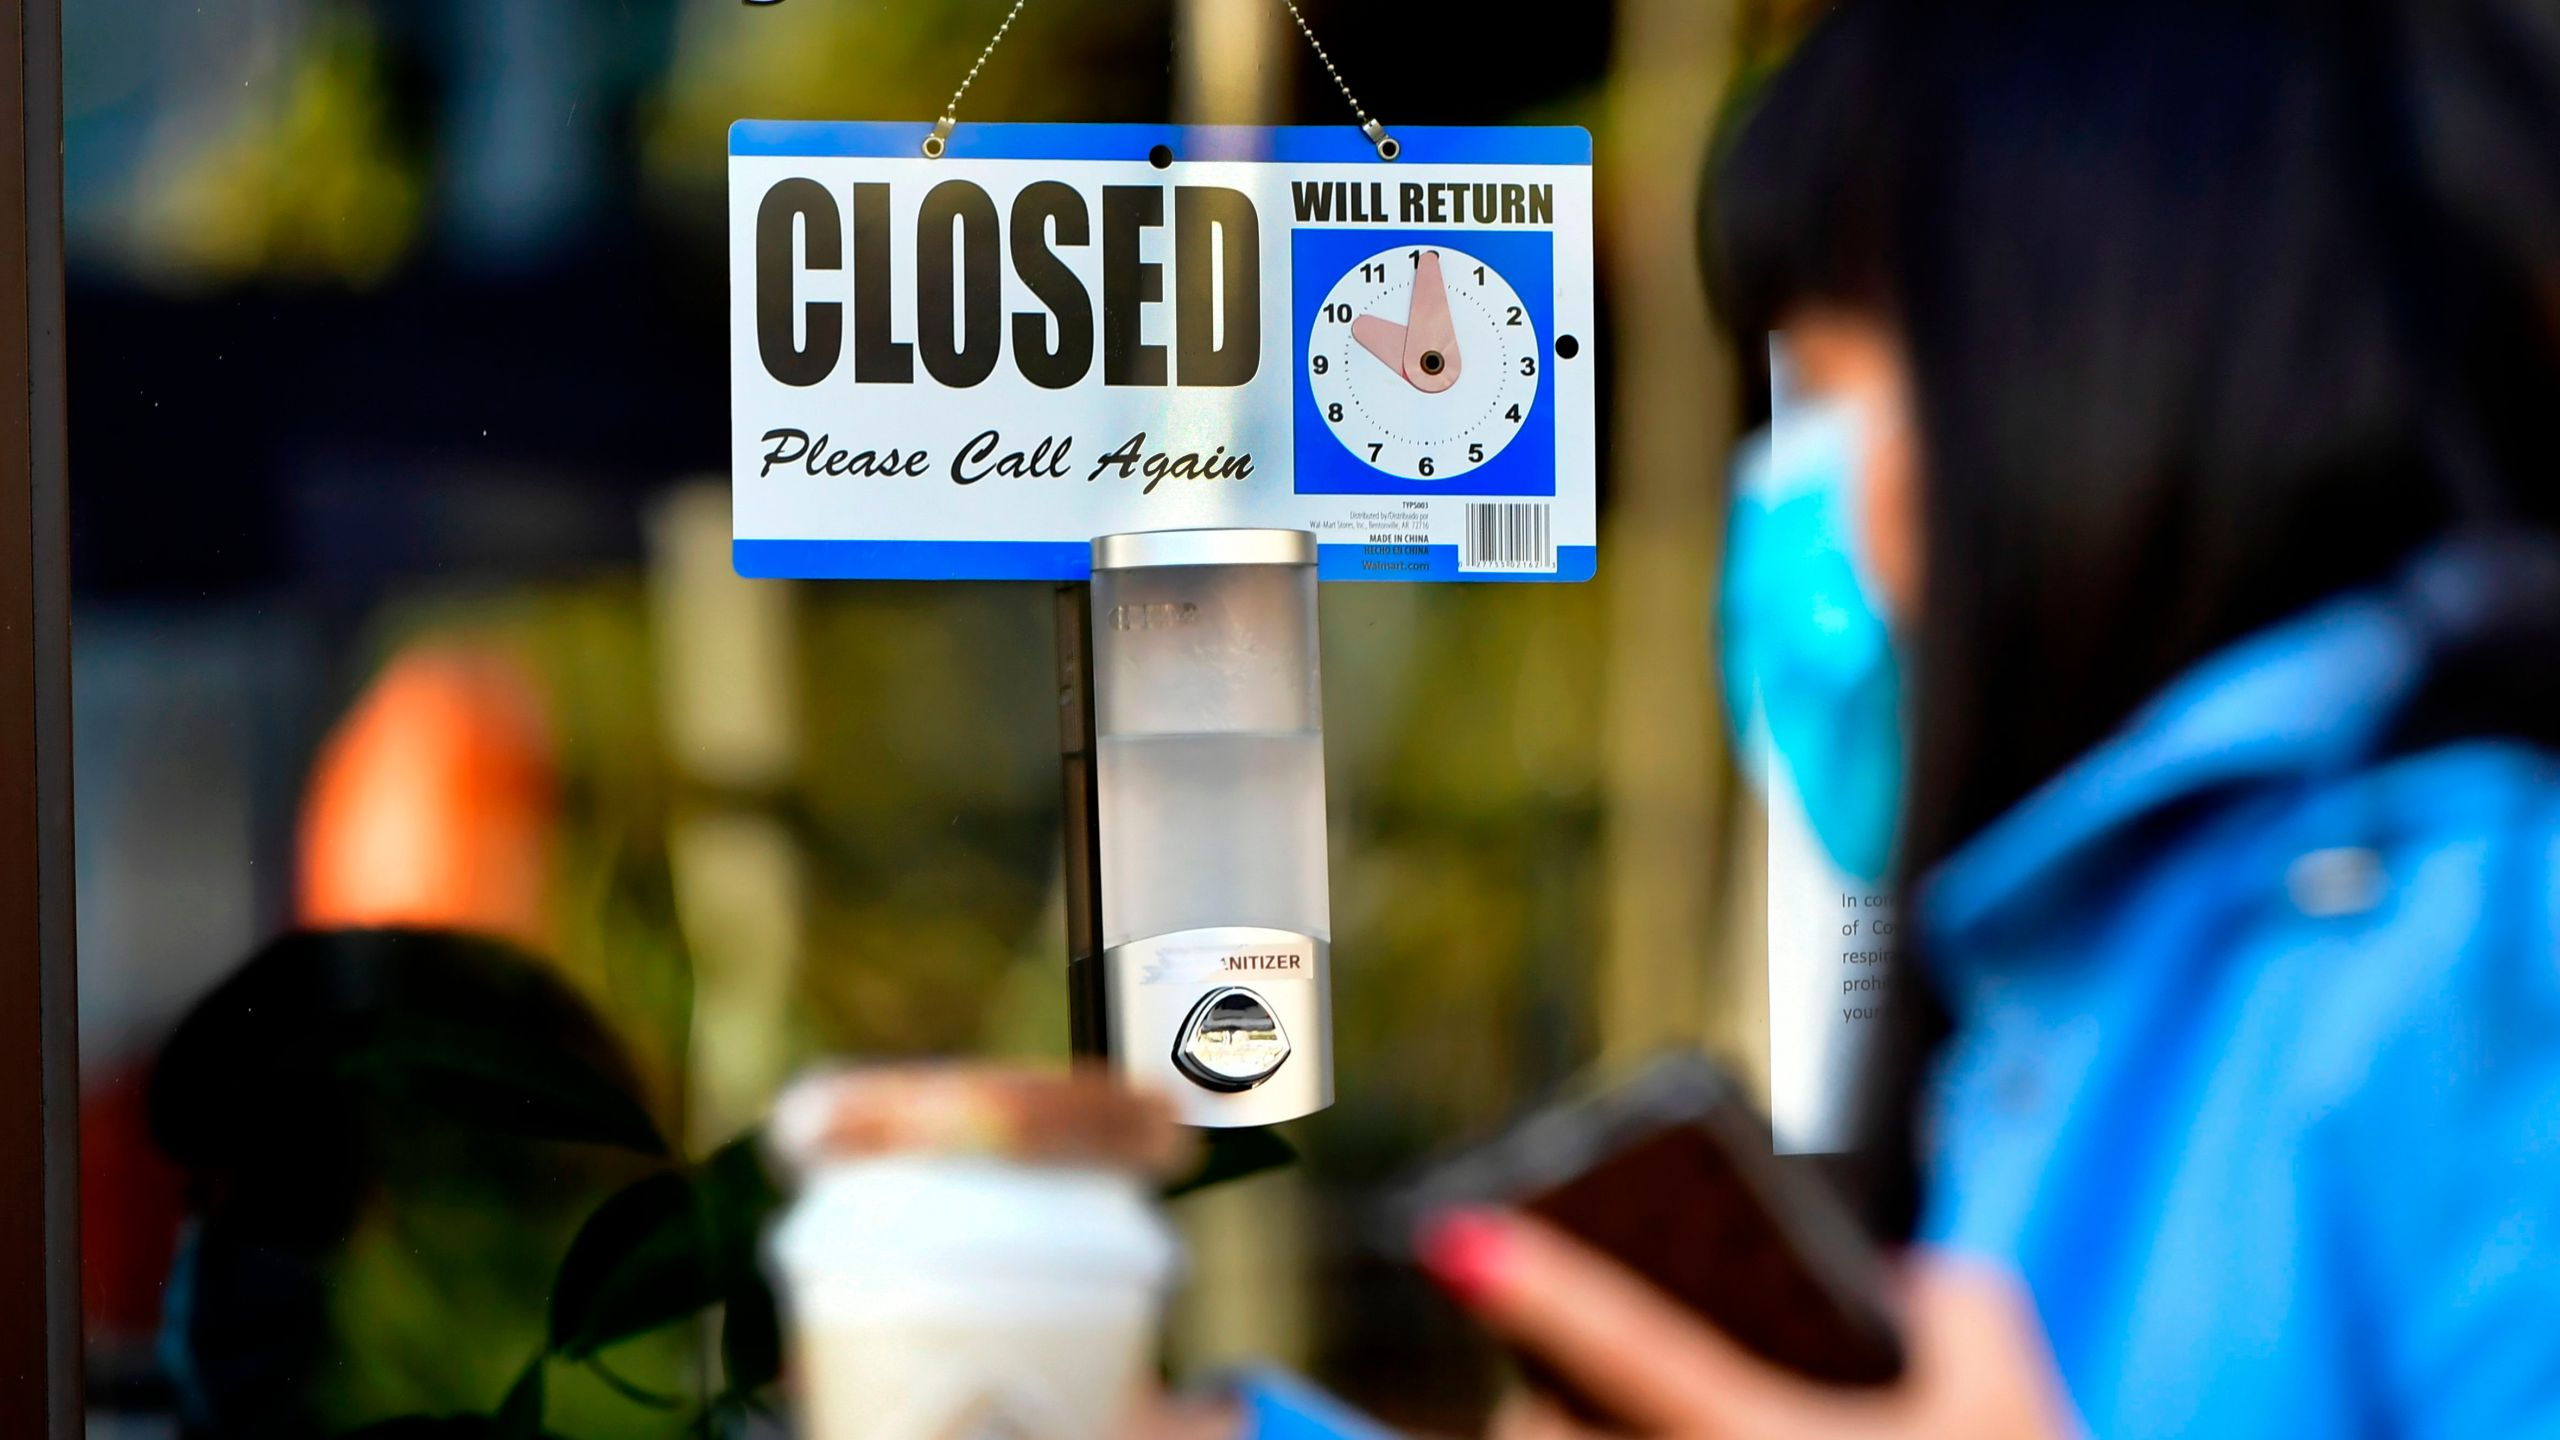 A pedestrian wearing her facemask and holding a cup of coffee walks past a 'closed' sign hanging on the door of a small business in Los Angeles on Nov. 30, 2020. (FREDERIC J. BROWN/AFP via Getty Images)